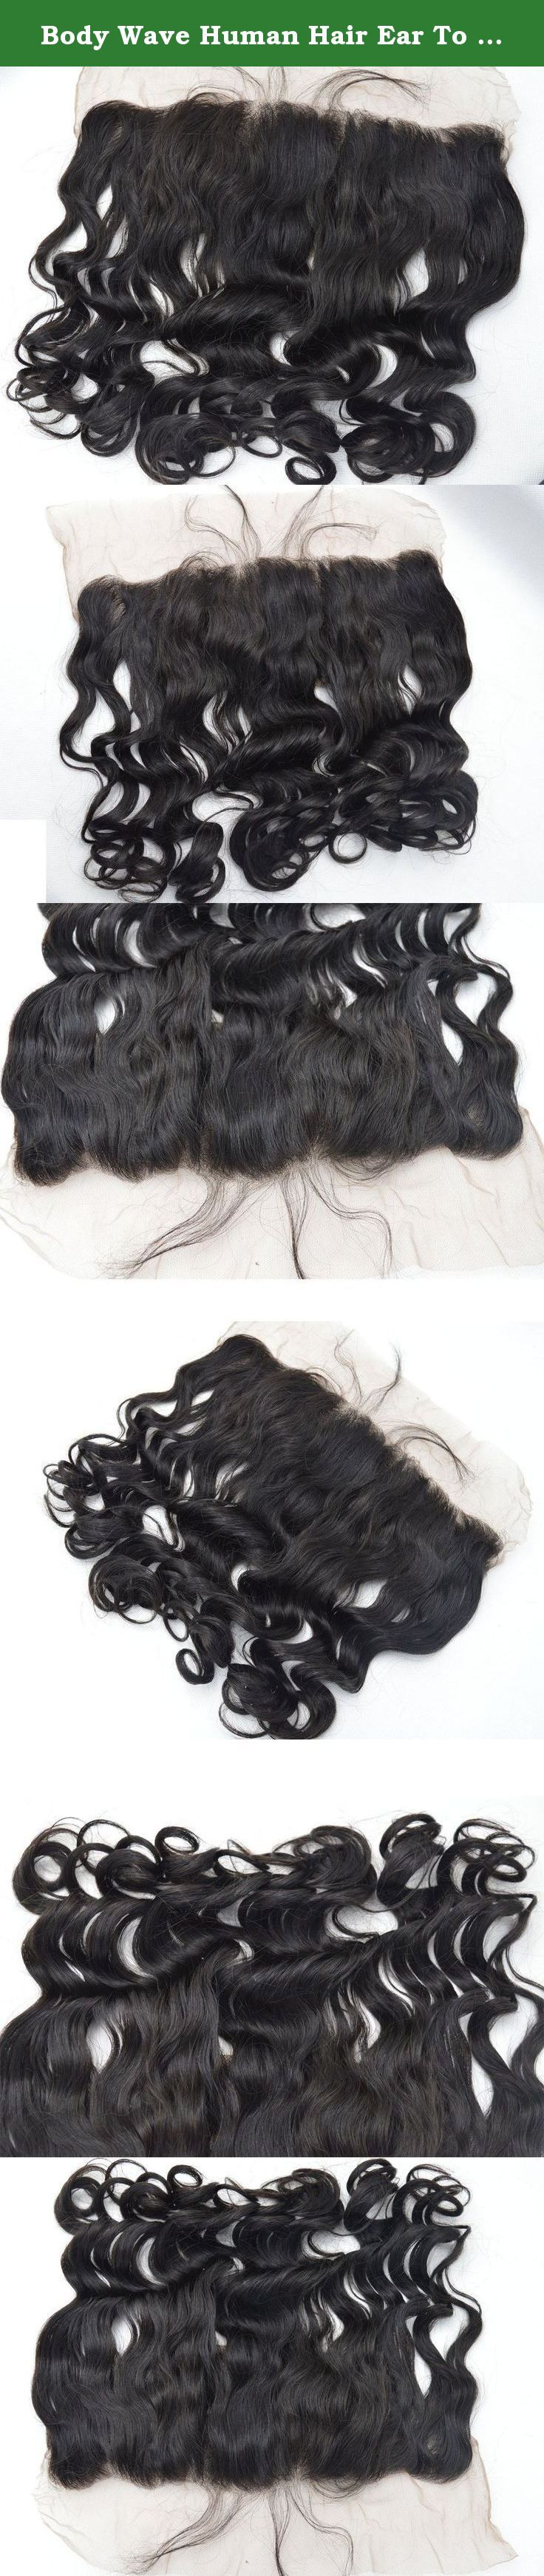 """Body Wave Human Hair Ear To Ear Lace Frontal Closures 13x4"""" Free Part Brazilian Virgin Remy Hair Front Closure With Baby Hair Bleached Knots 12 inches Natural Color. Material: 100% unprocessed virgin remy human hair with swiss lace Lace Size: 13x4 Inch Hair color: Natural color Texture: Body wave Lace Color: Medium Brown Density: 130% Density Parting Style: Free part, middle part Attribute: Soft, Tangle free, No Shedding to minimal shedding, No smell, long lifespan."""